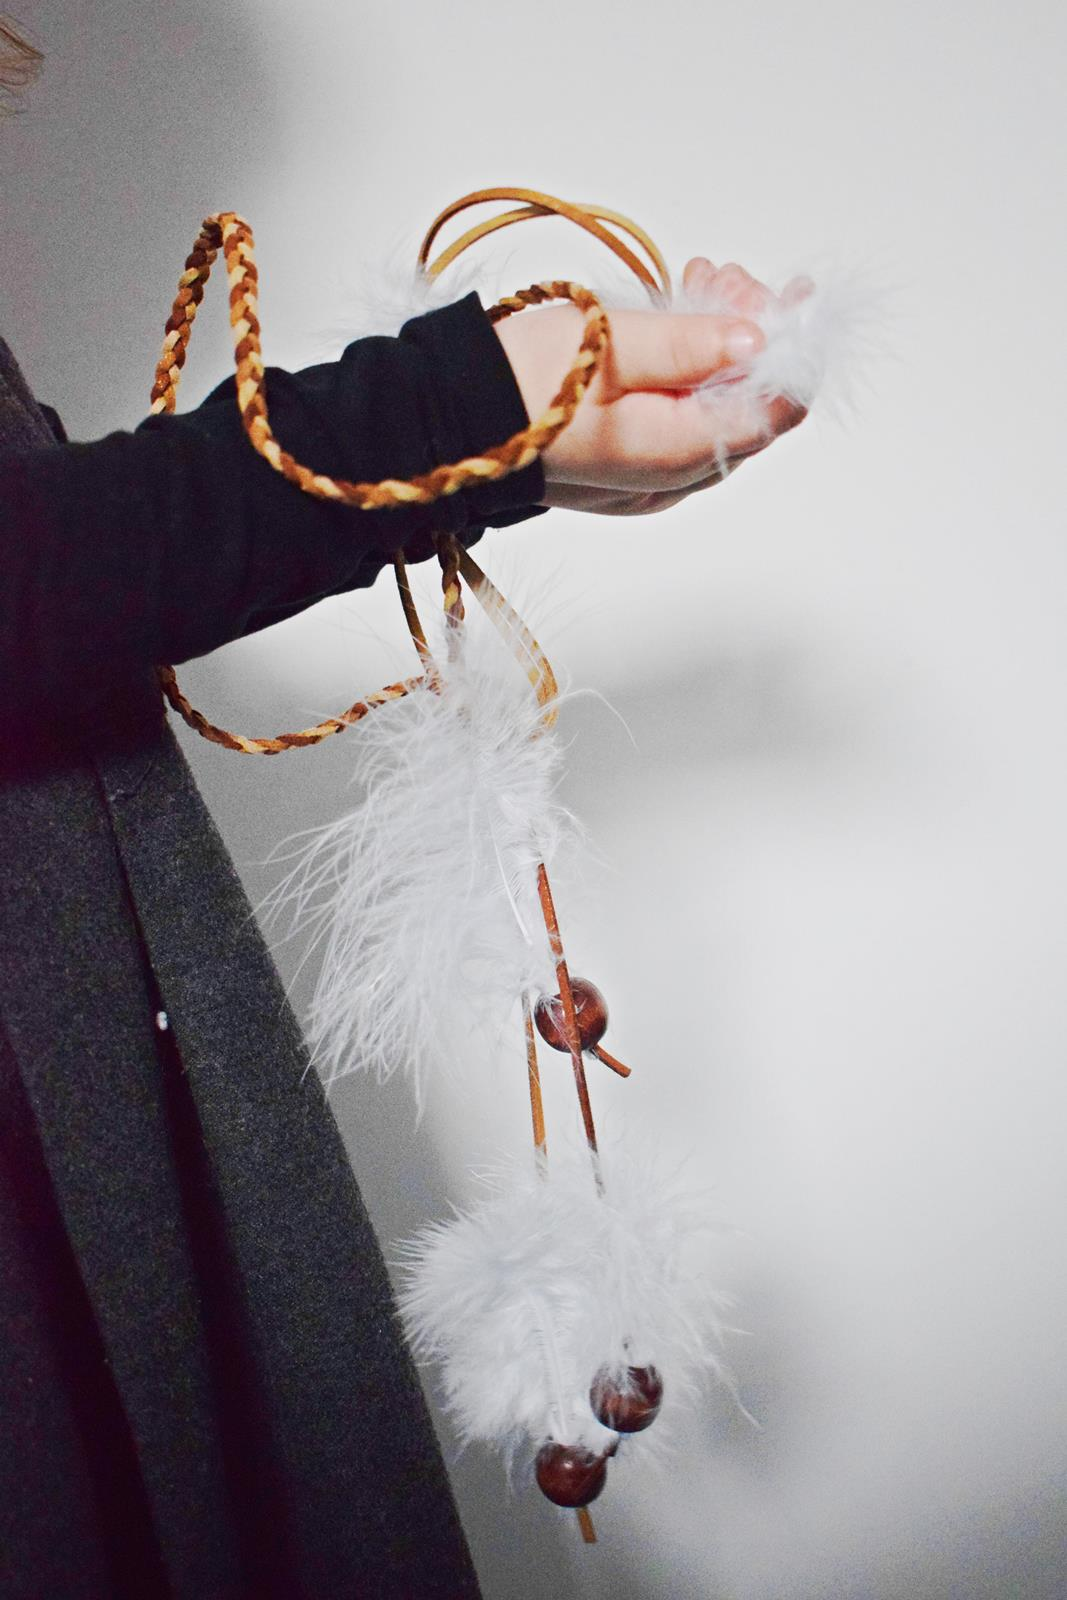 Diy couronne de plumes et de perles our little family le blog 5 bis